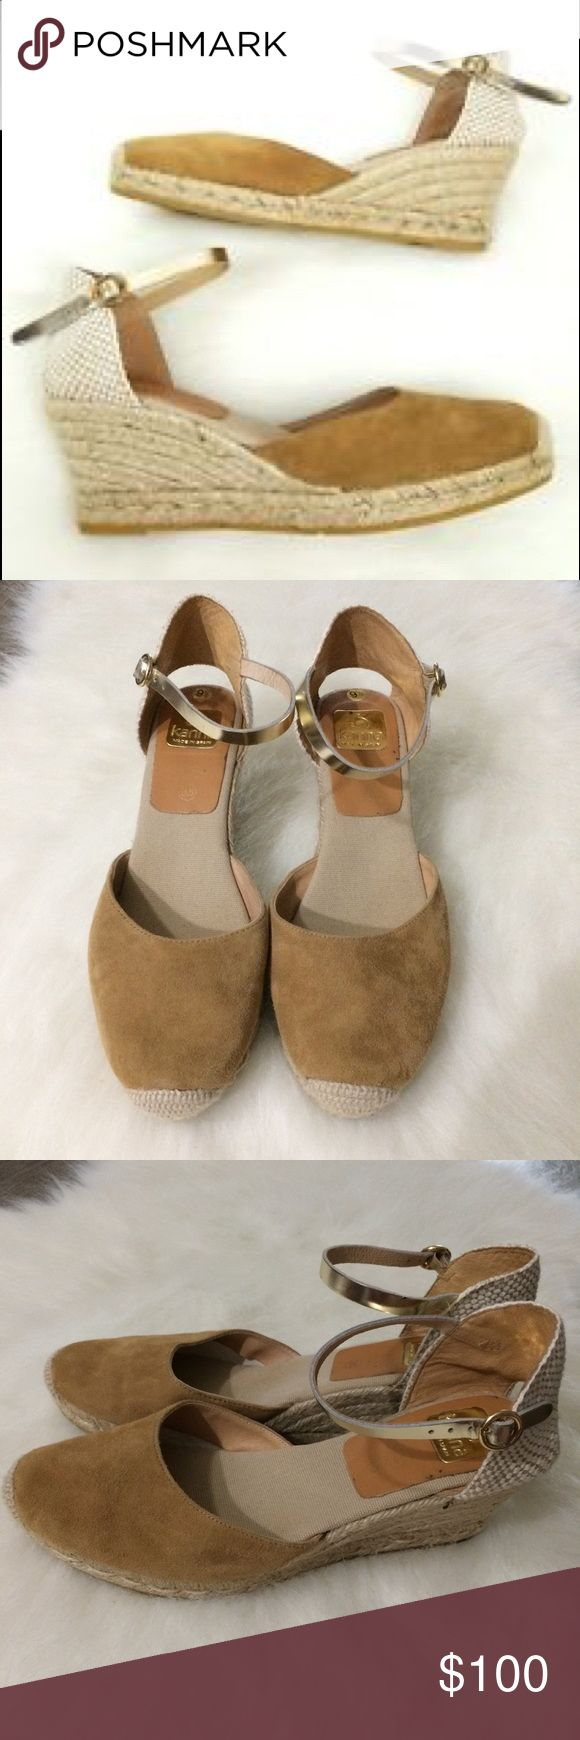 Kanna espadrille wedge closed toe sandals 9.5 Good used condition. kanna Shoes Espadrilles